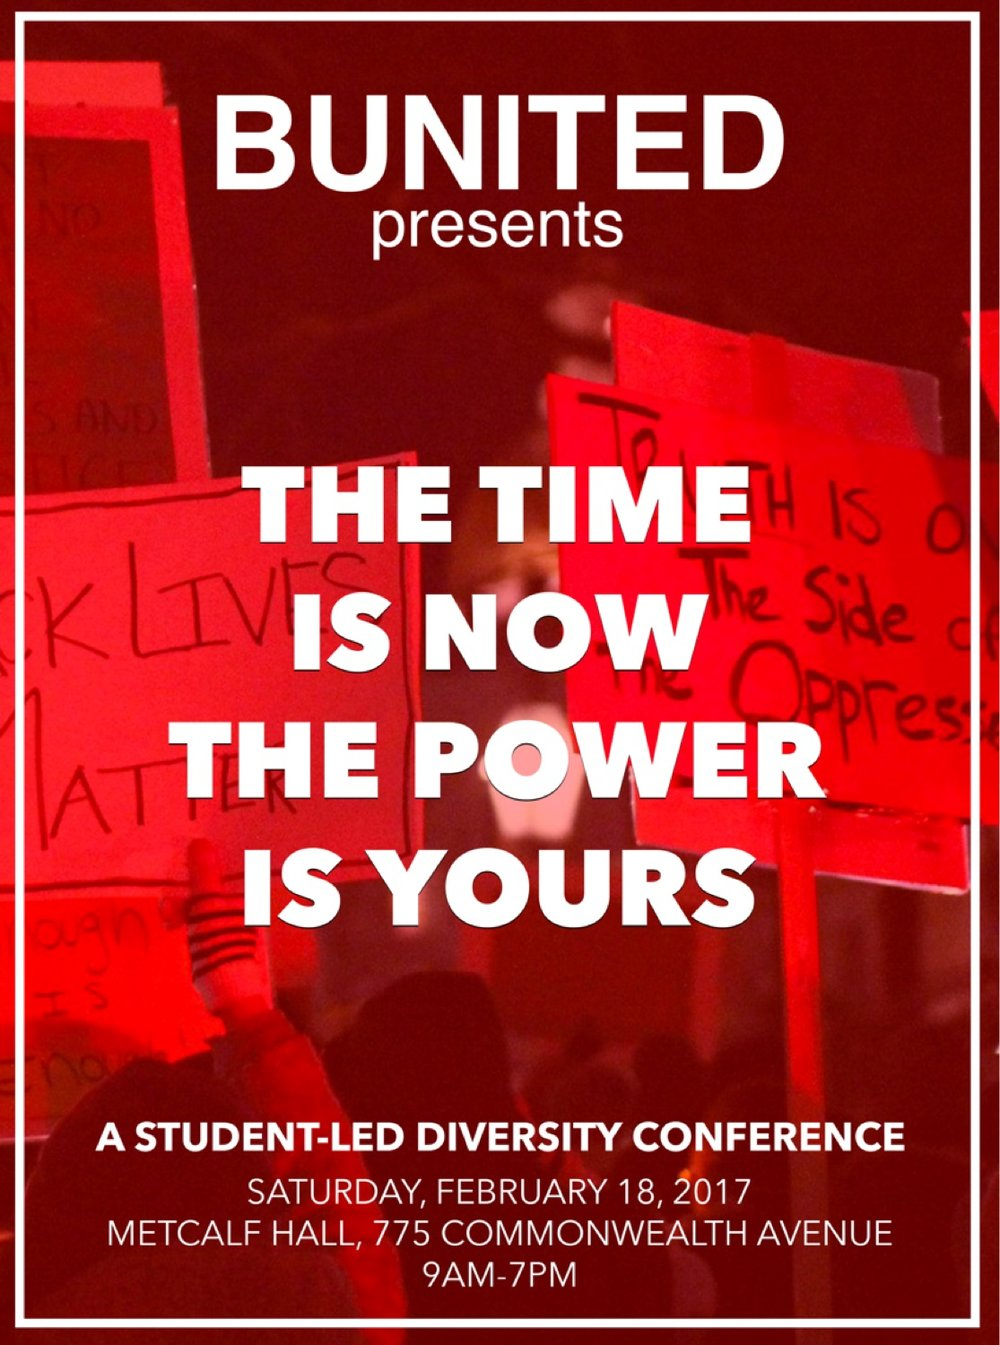 """The Time is Now The Power is Yours - Through our theme """"The Time is Now. The Power is Yours"""", we hope to simultaneously develop a sense of urgency and empowerment within our peers. In the midst of social injustices, we can no longer be silent and we can no longer be passive. Instead, we need to make our voices heard as there is power among the youth. As young people we must recognize our power to change the world."""